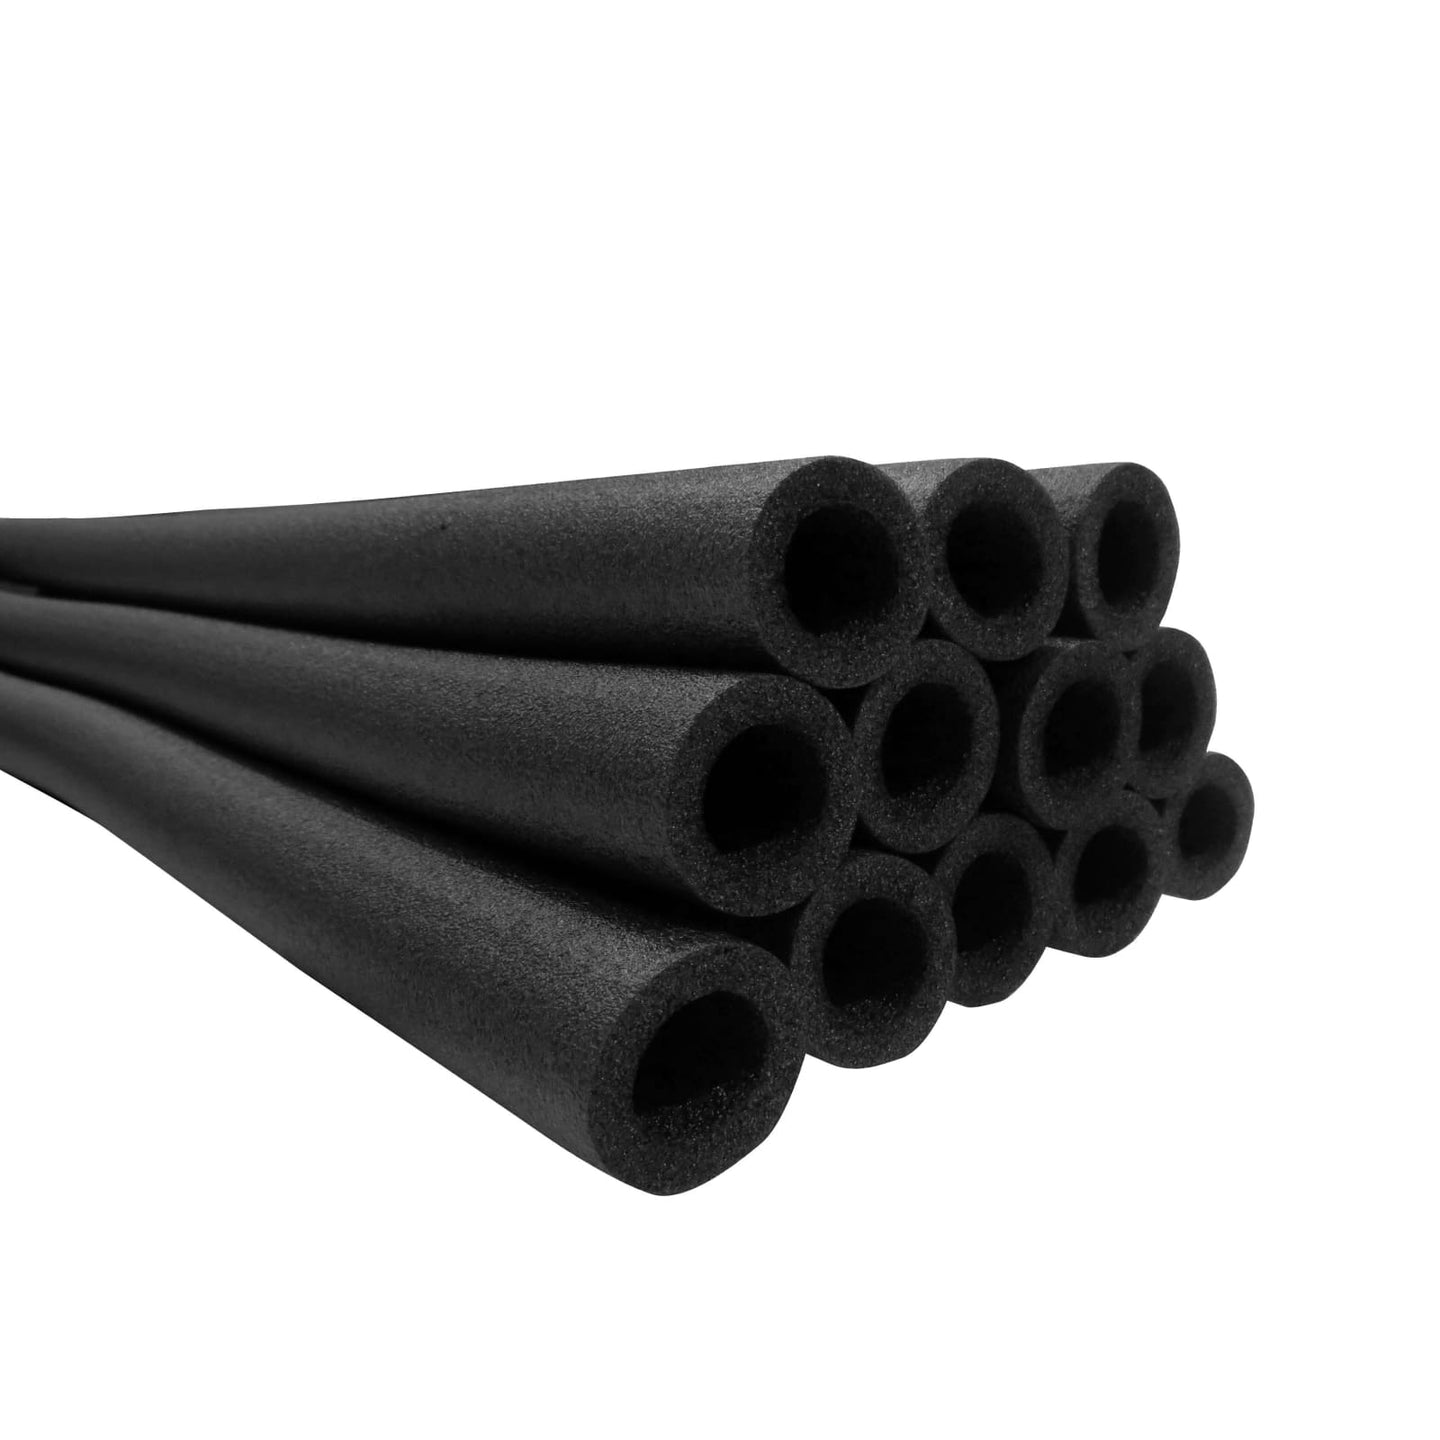 Upper Bounce 33 Inch Trampoline Pole Foam Sleeves Fits For 1 Diameter Pole - Set Of 16 -Black - Trampoline Replacements